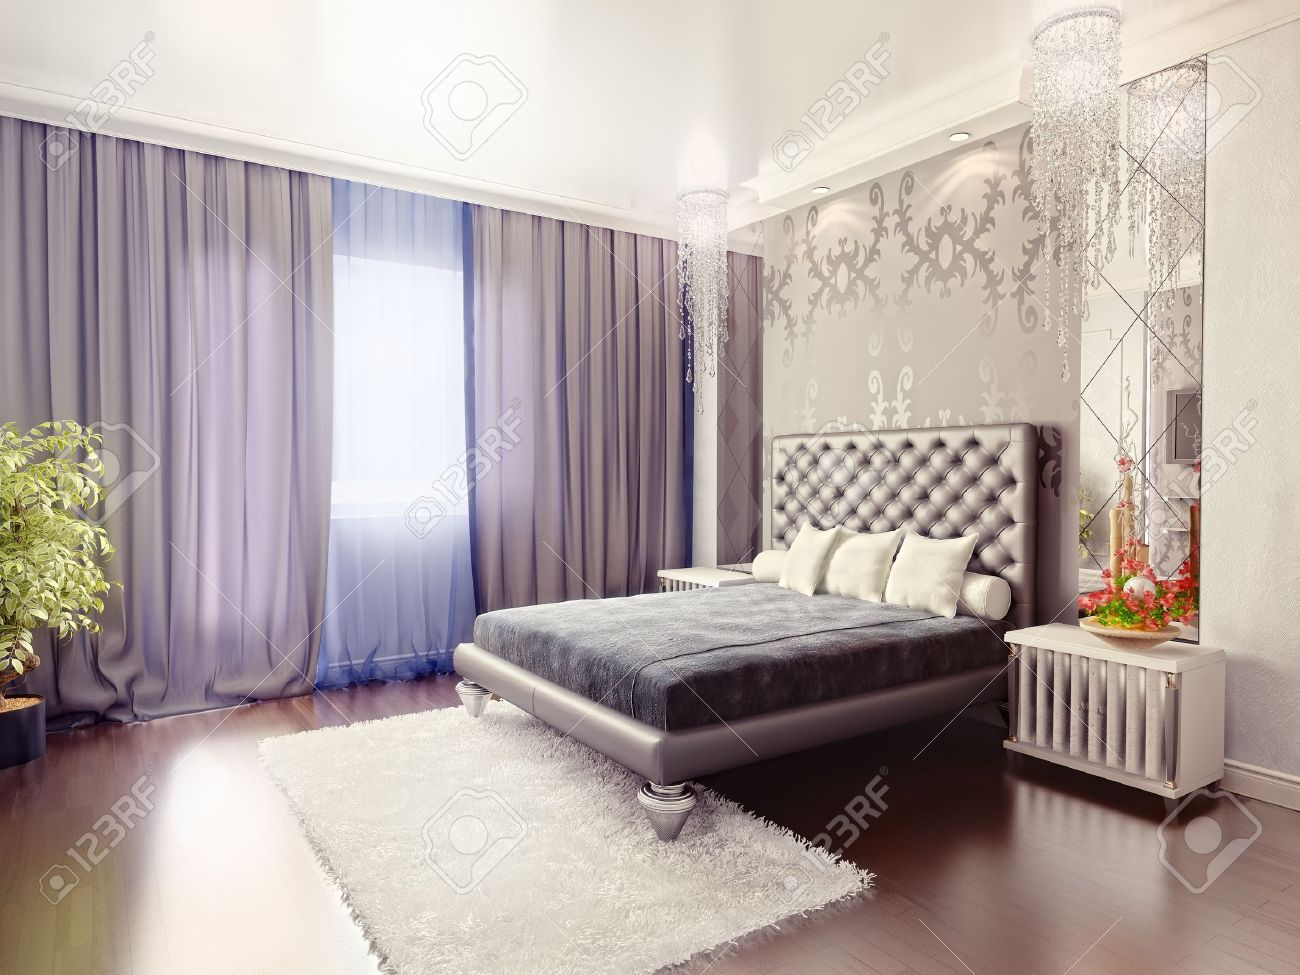 Modern Luxury Bedrooms Modern Luxury Bedroom Interior 3d Rendering Stock Photo Picture